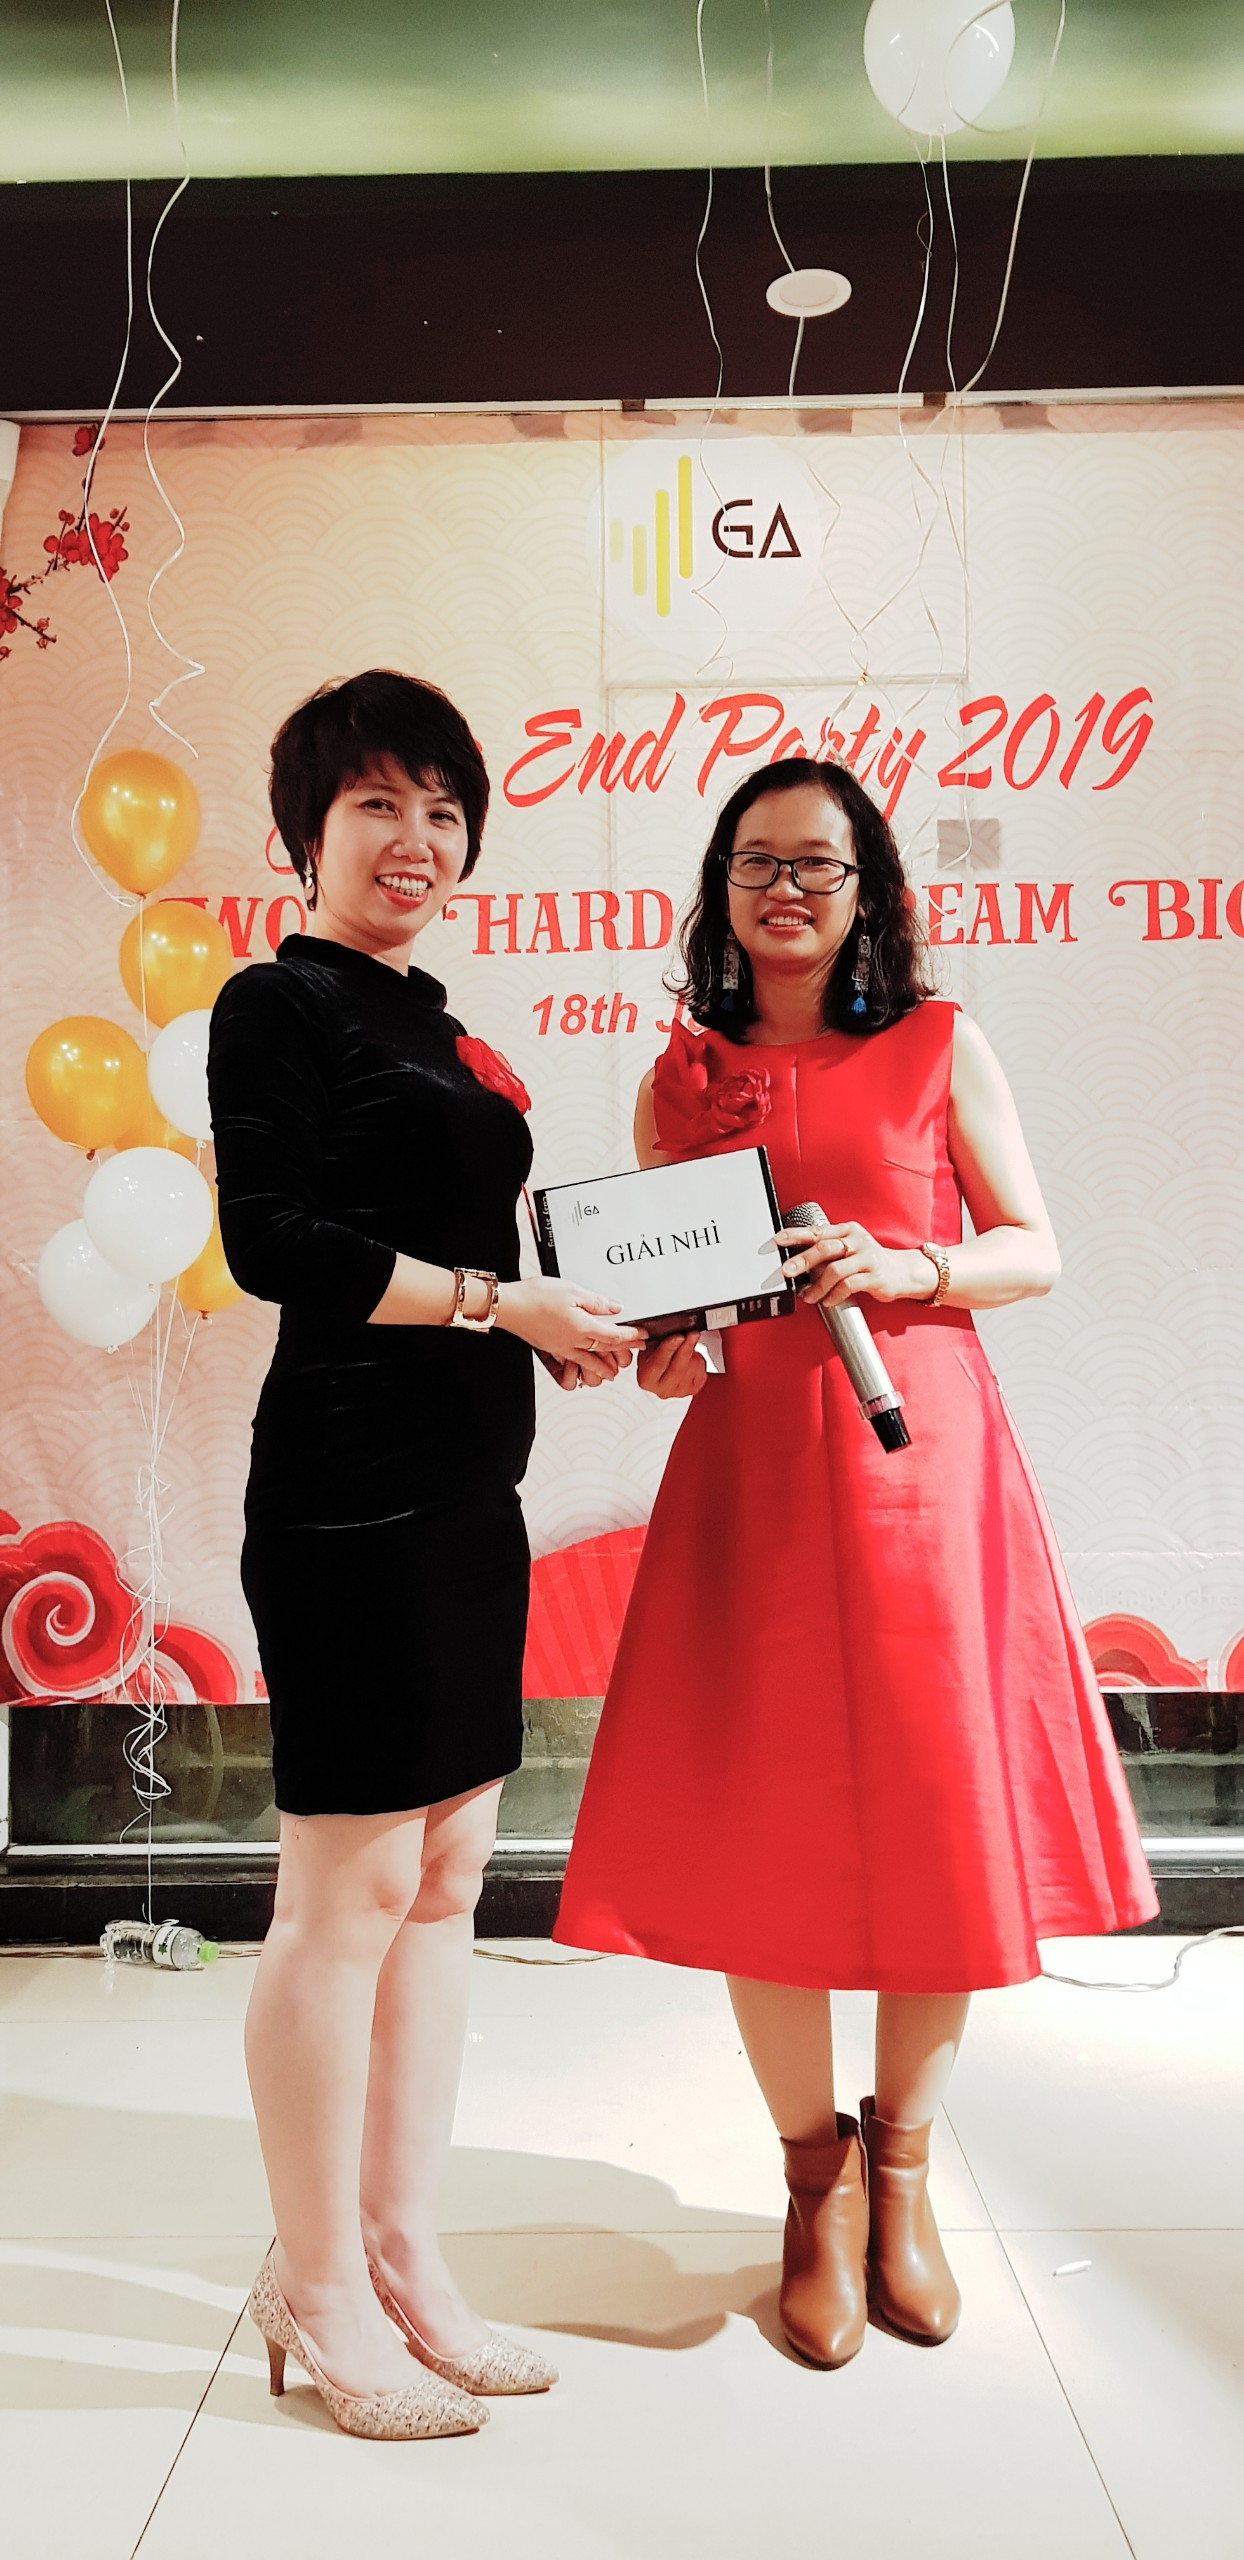 Year End Party 2019 lucky draw giai nhi